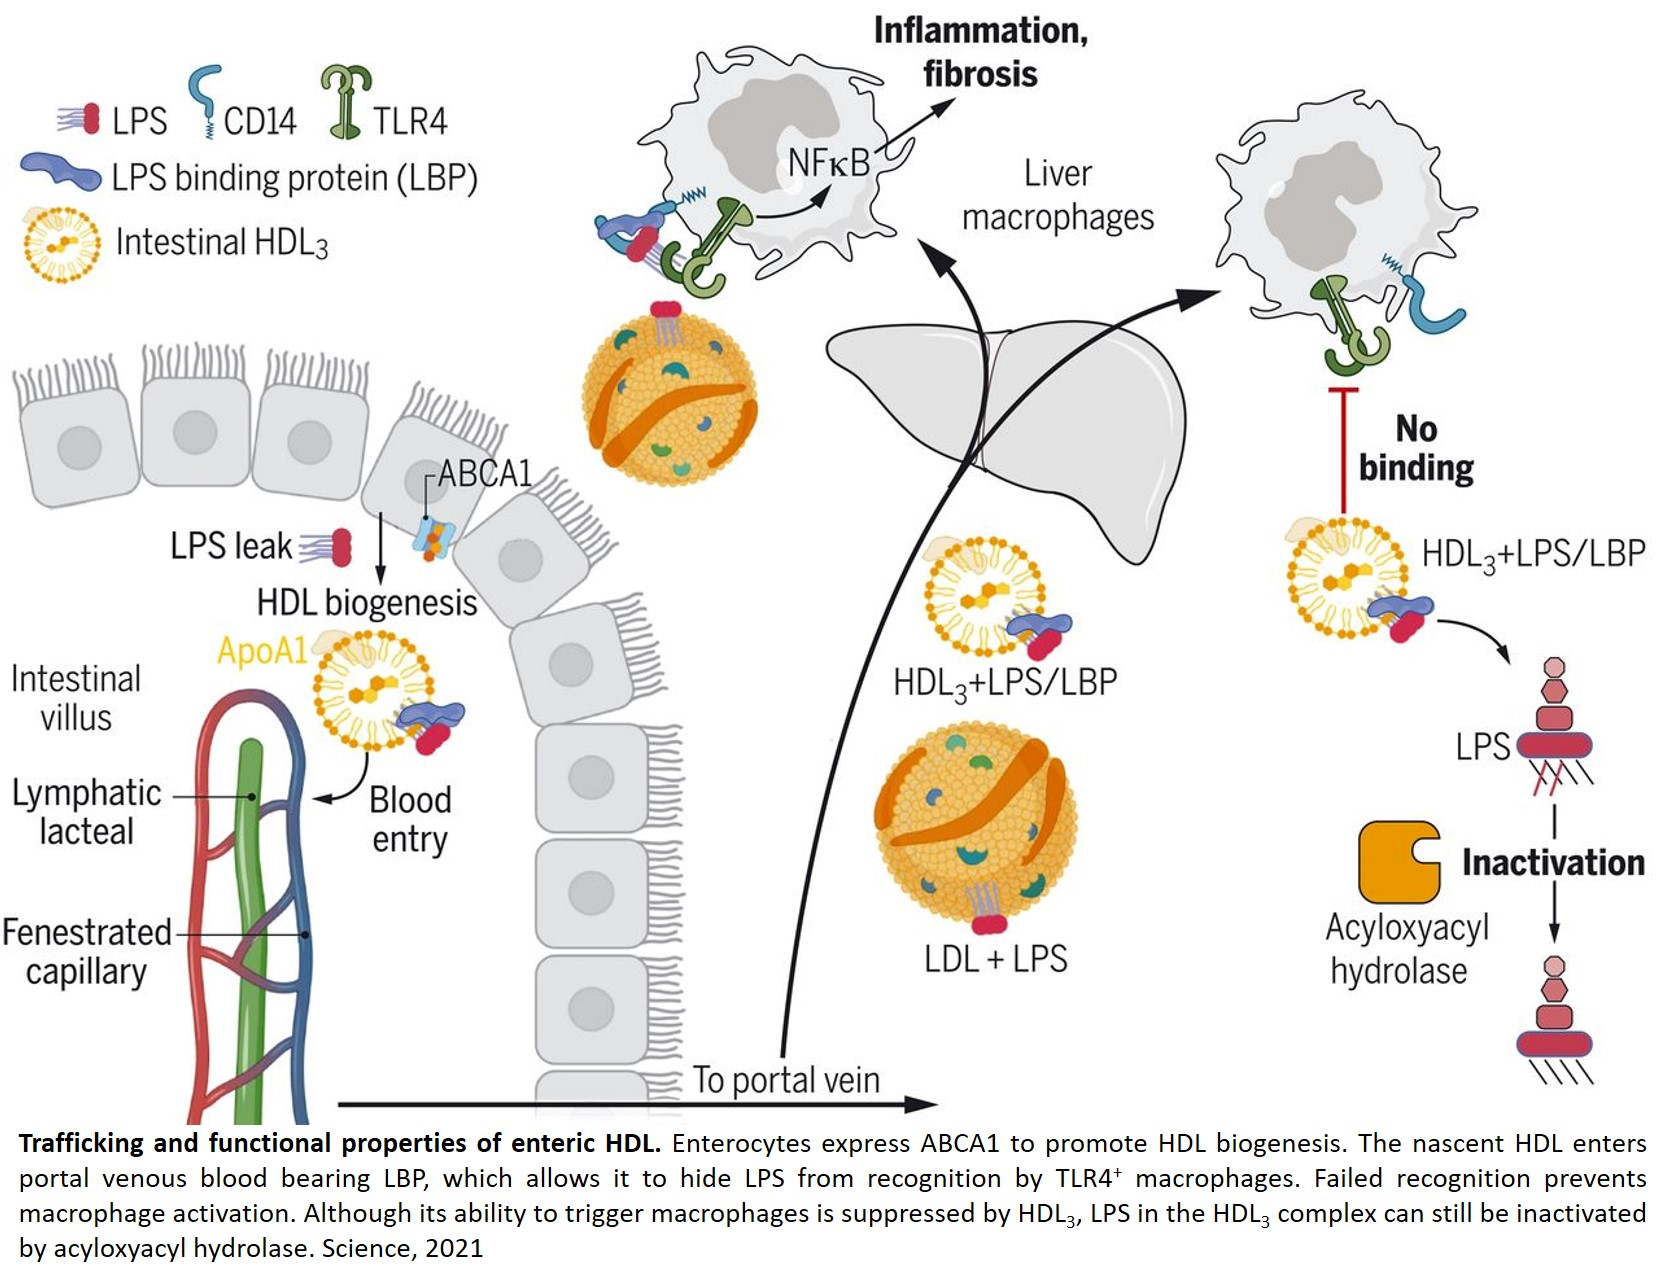 Intestinal HDL may prevent liver inflammation!